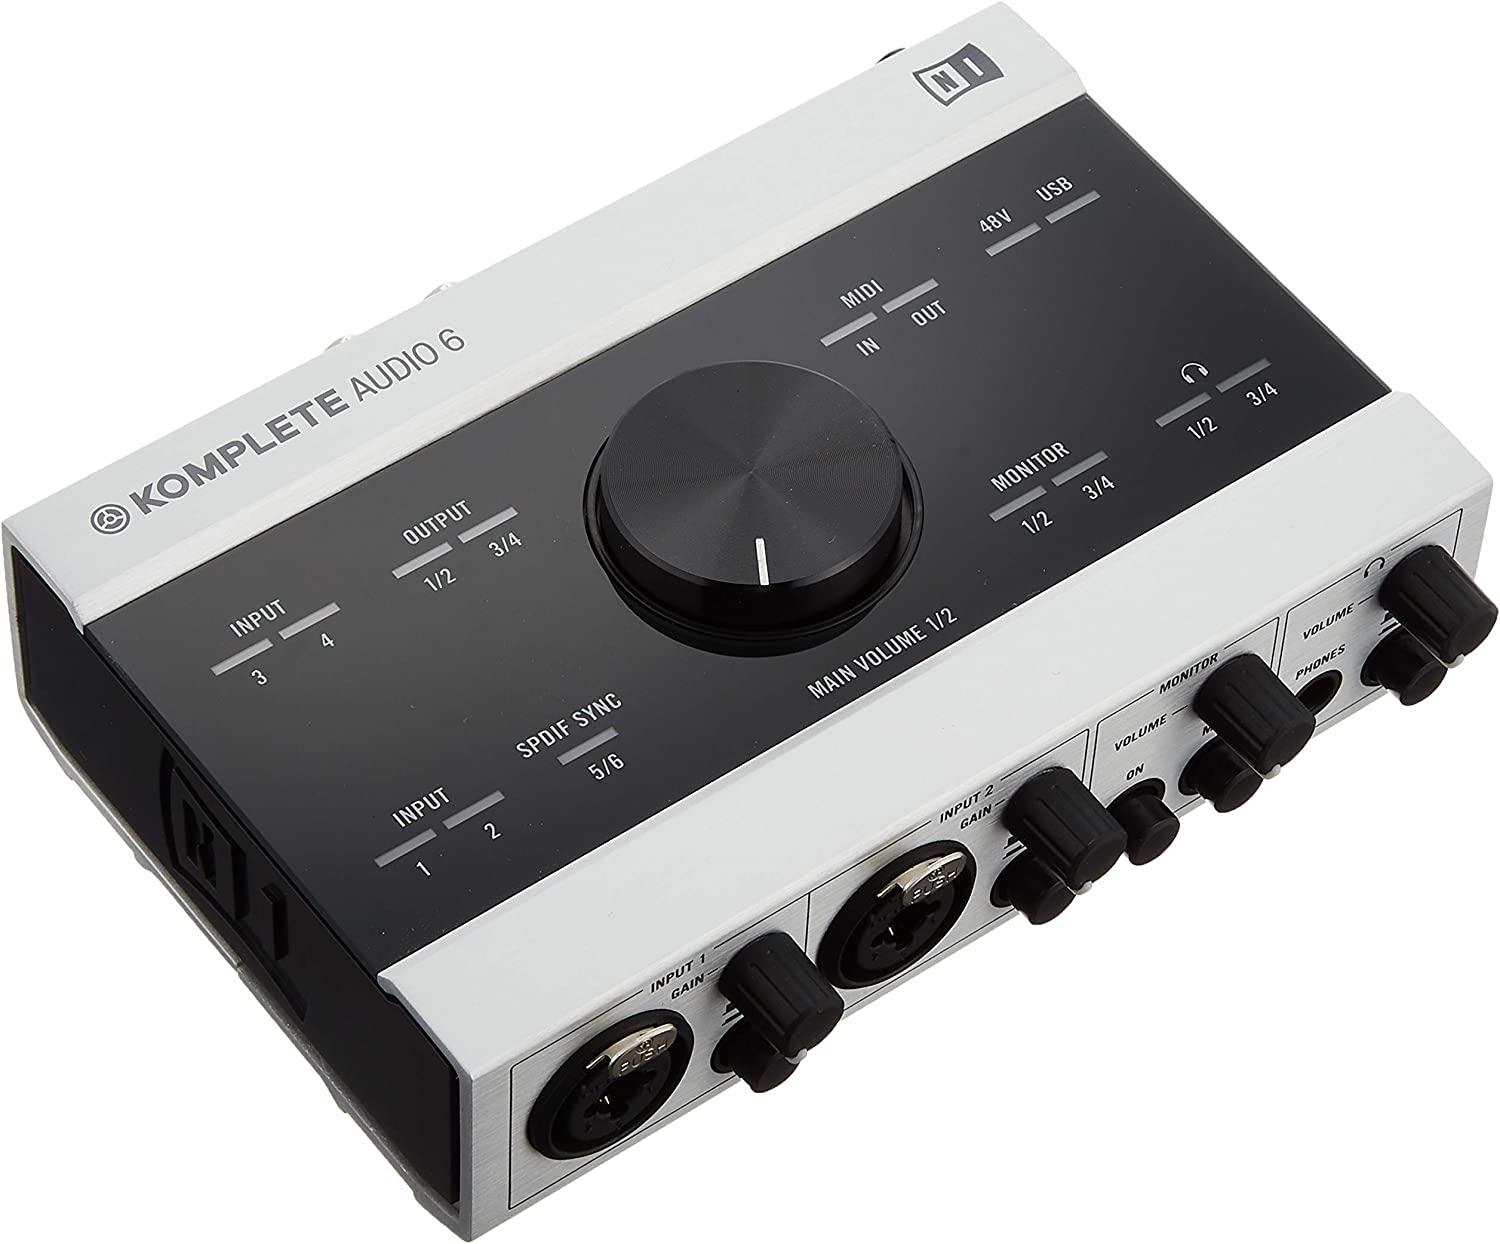 Native-Instruments-Komplete-Audio-6-USB-Audio-Interface